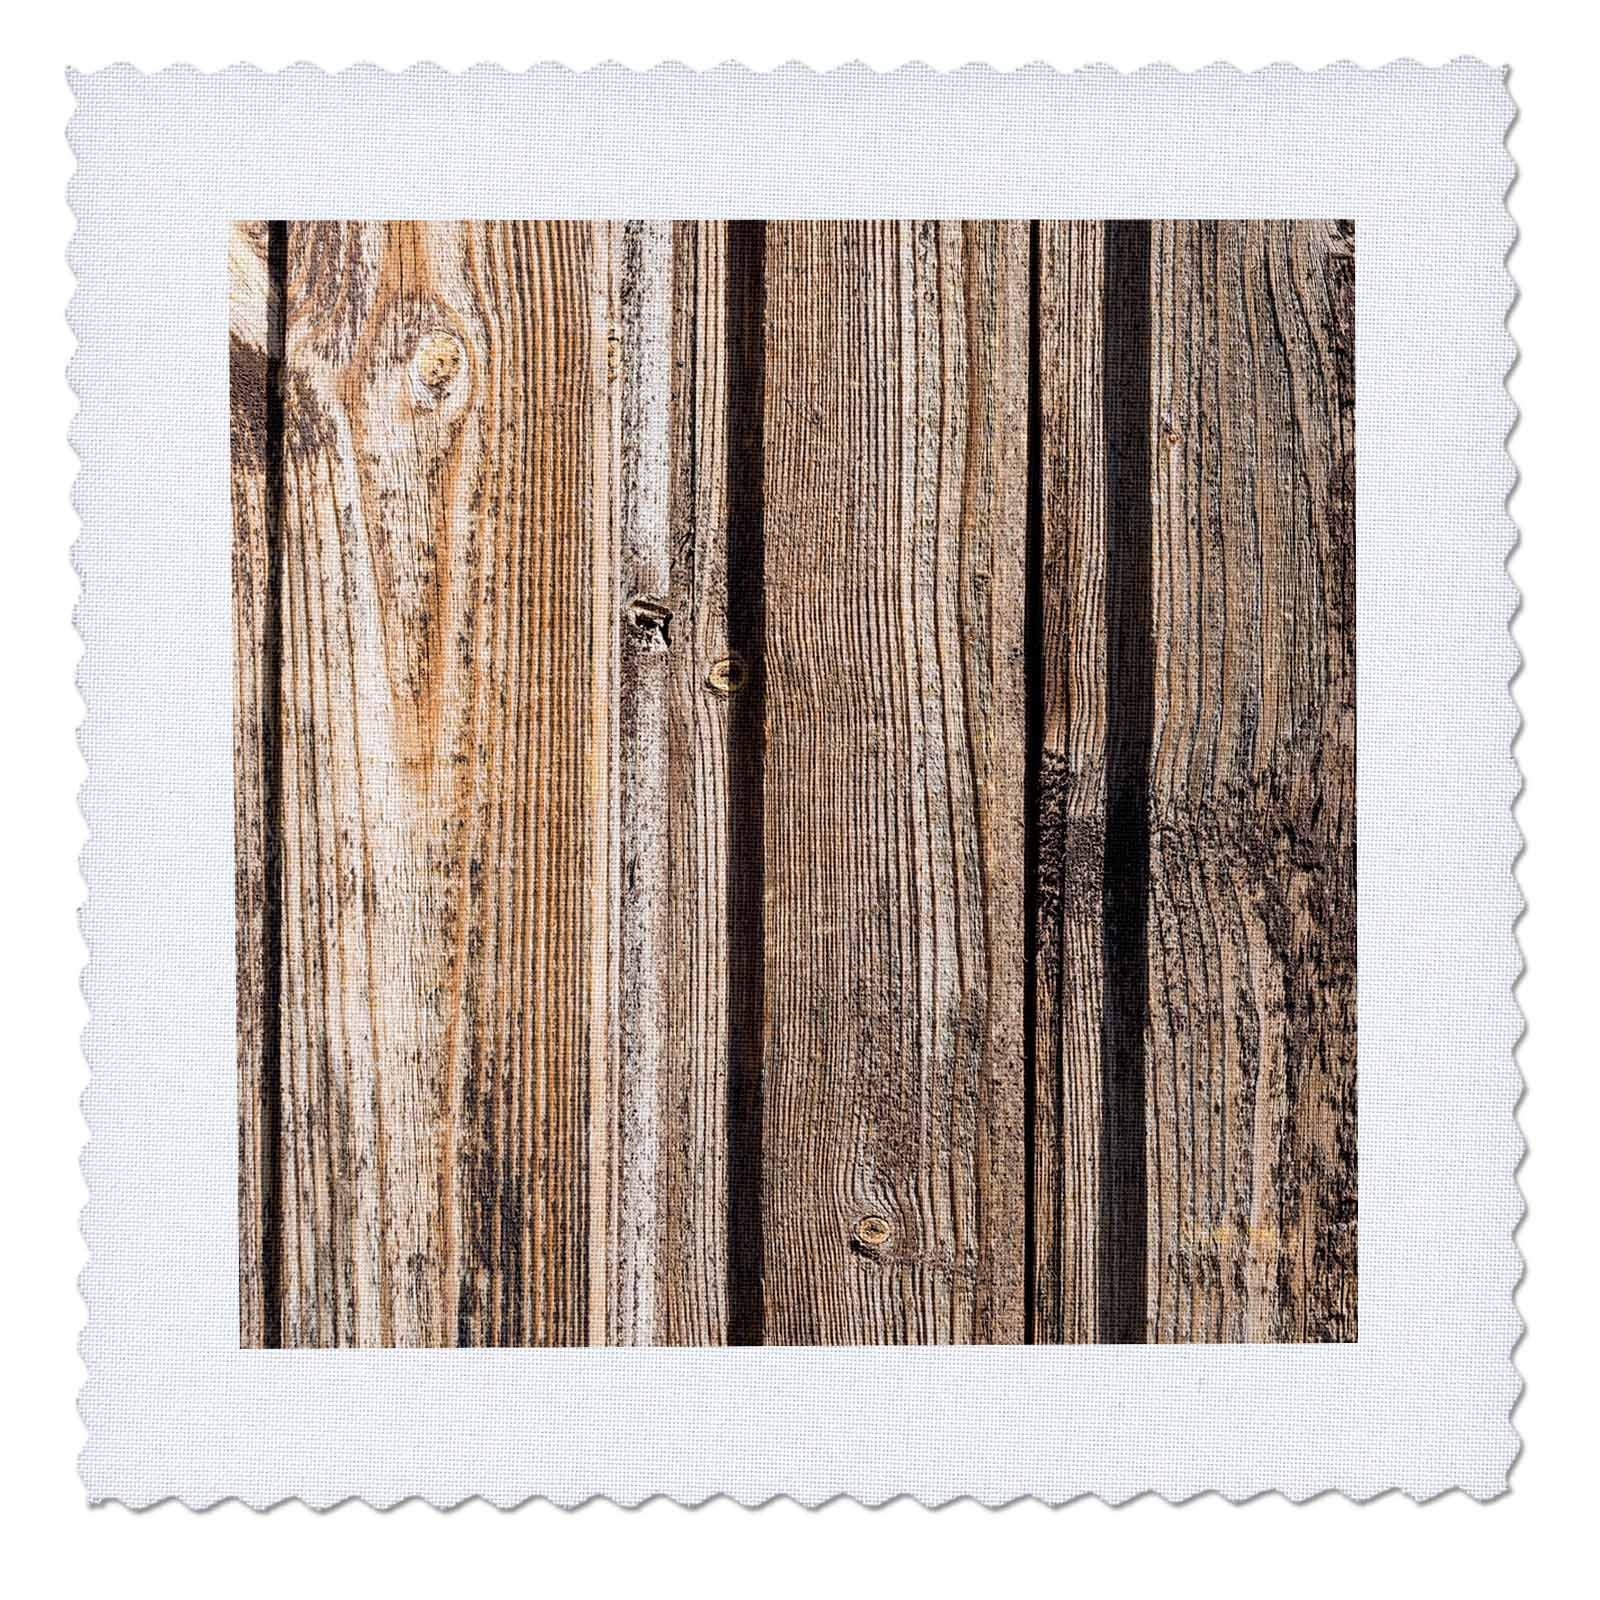 3dRose Alexis Photography - Texture Wood - Old, used, rough, wooden planks. Wood texture - 16x16 inch quilt square (qs_270829_6)